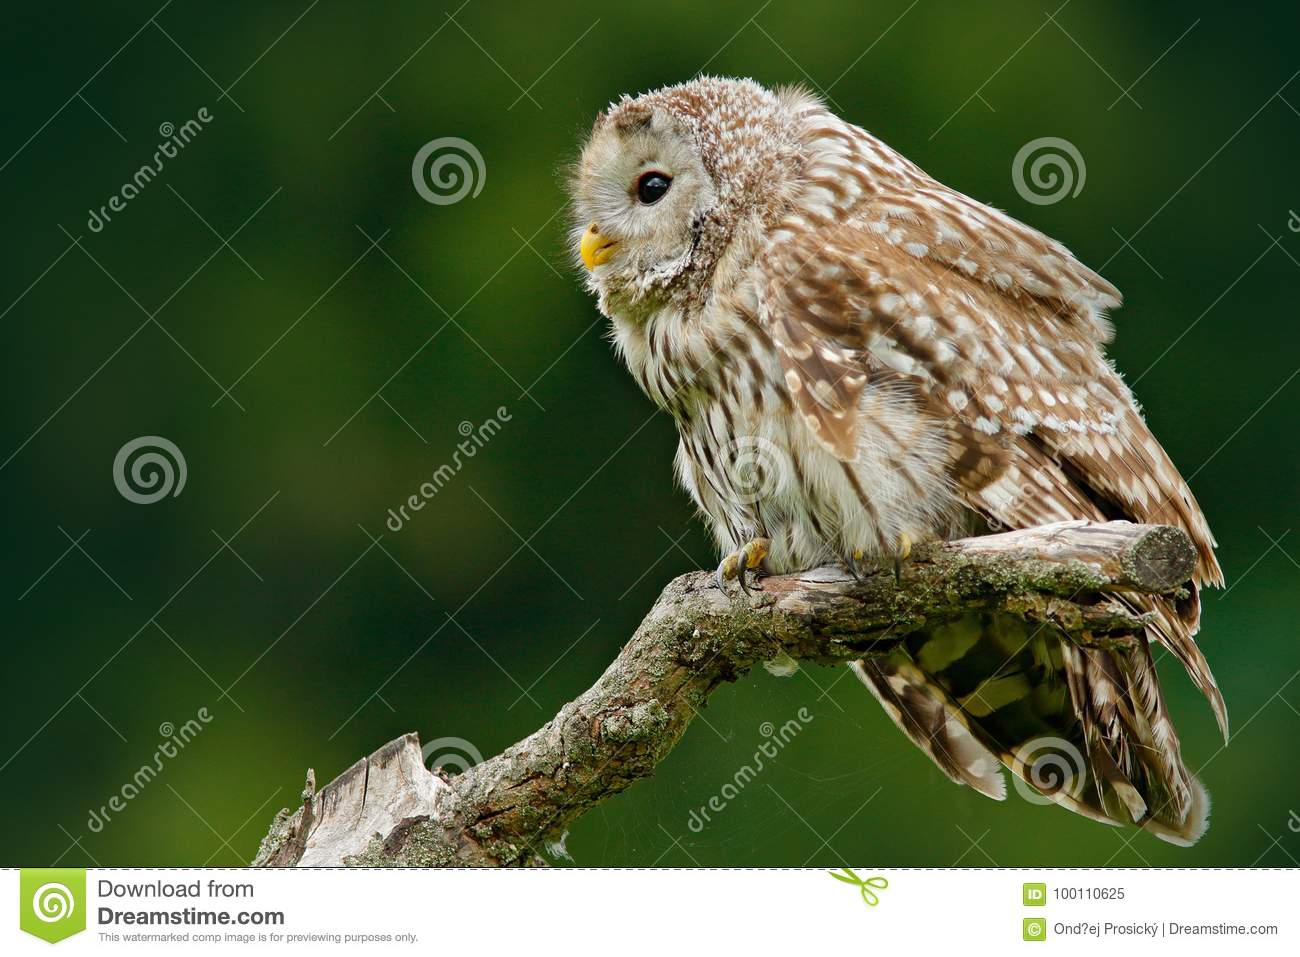 Owl in nature. Ural Owl, Strix uralensis, sitting on tree branch, at green leaves oak forest, Norway. Wildlife scene from nature.